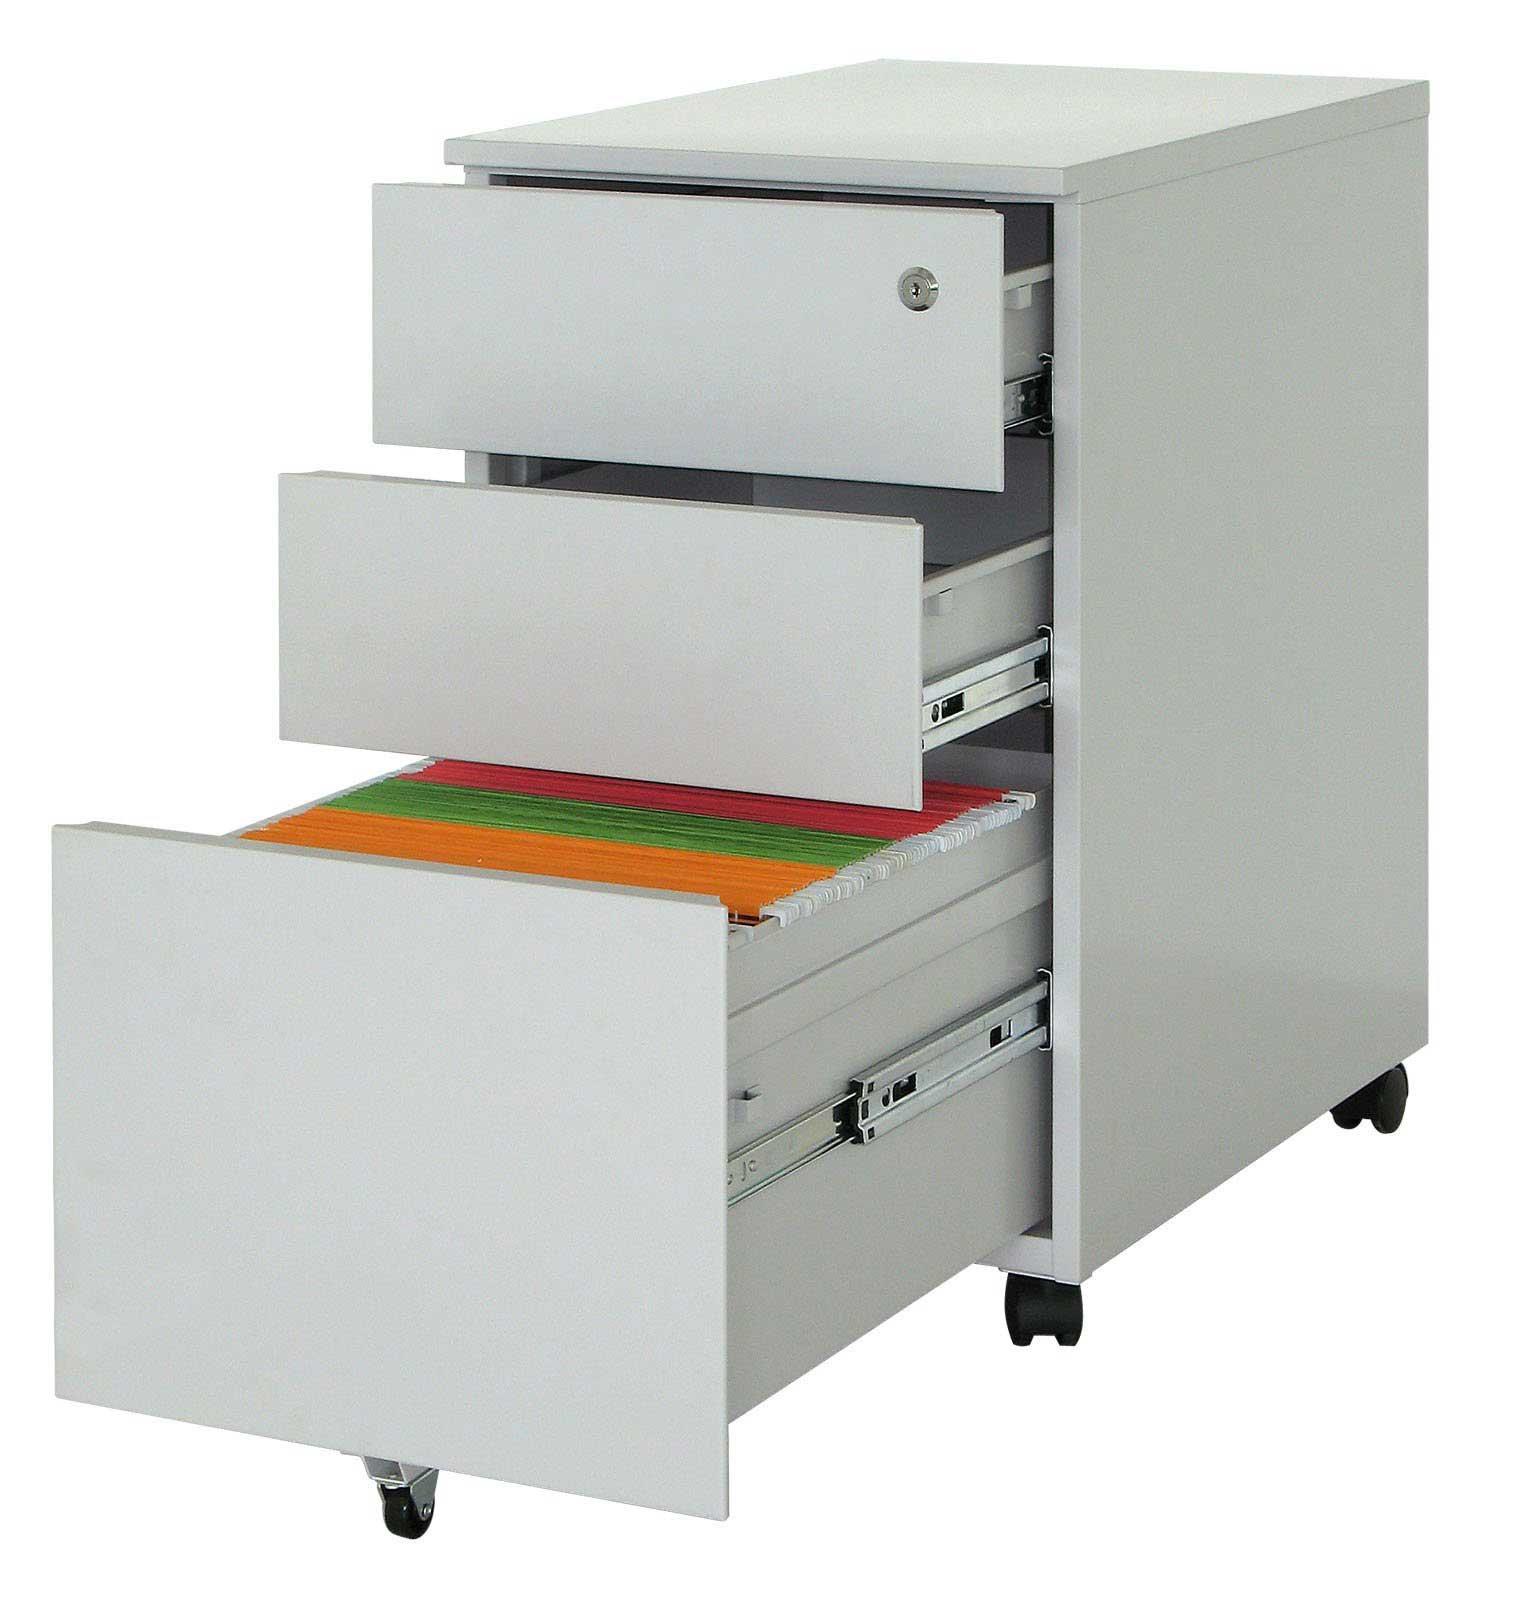 mobile metal file storage cabinets unit